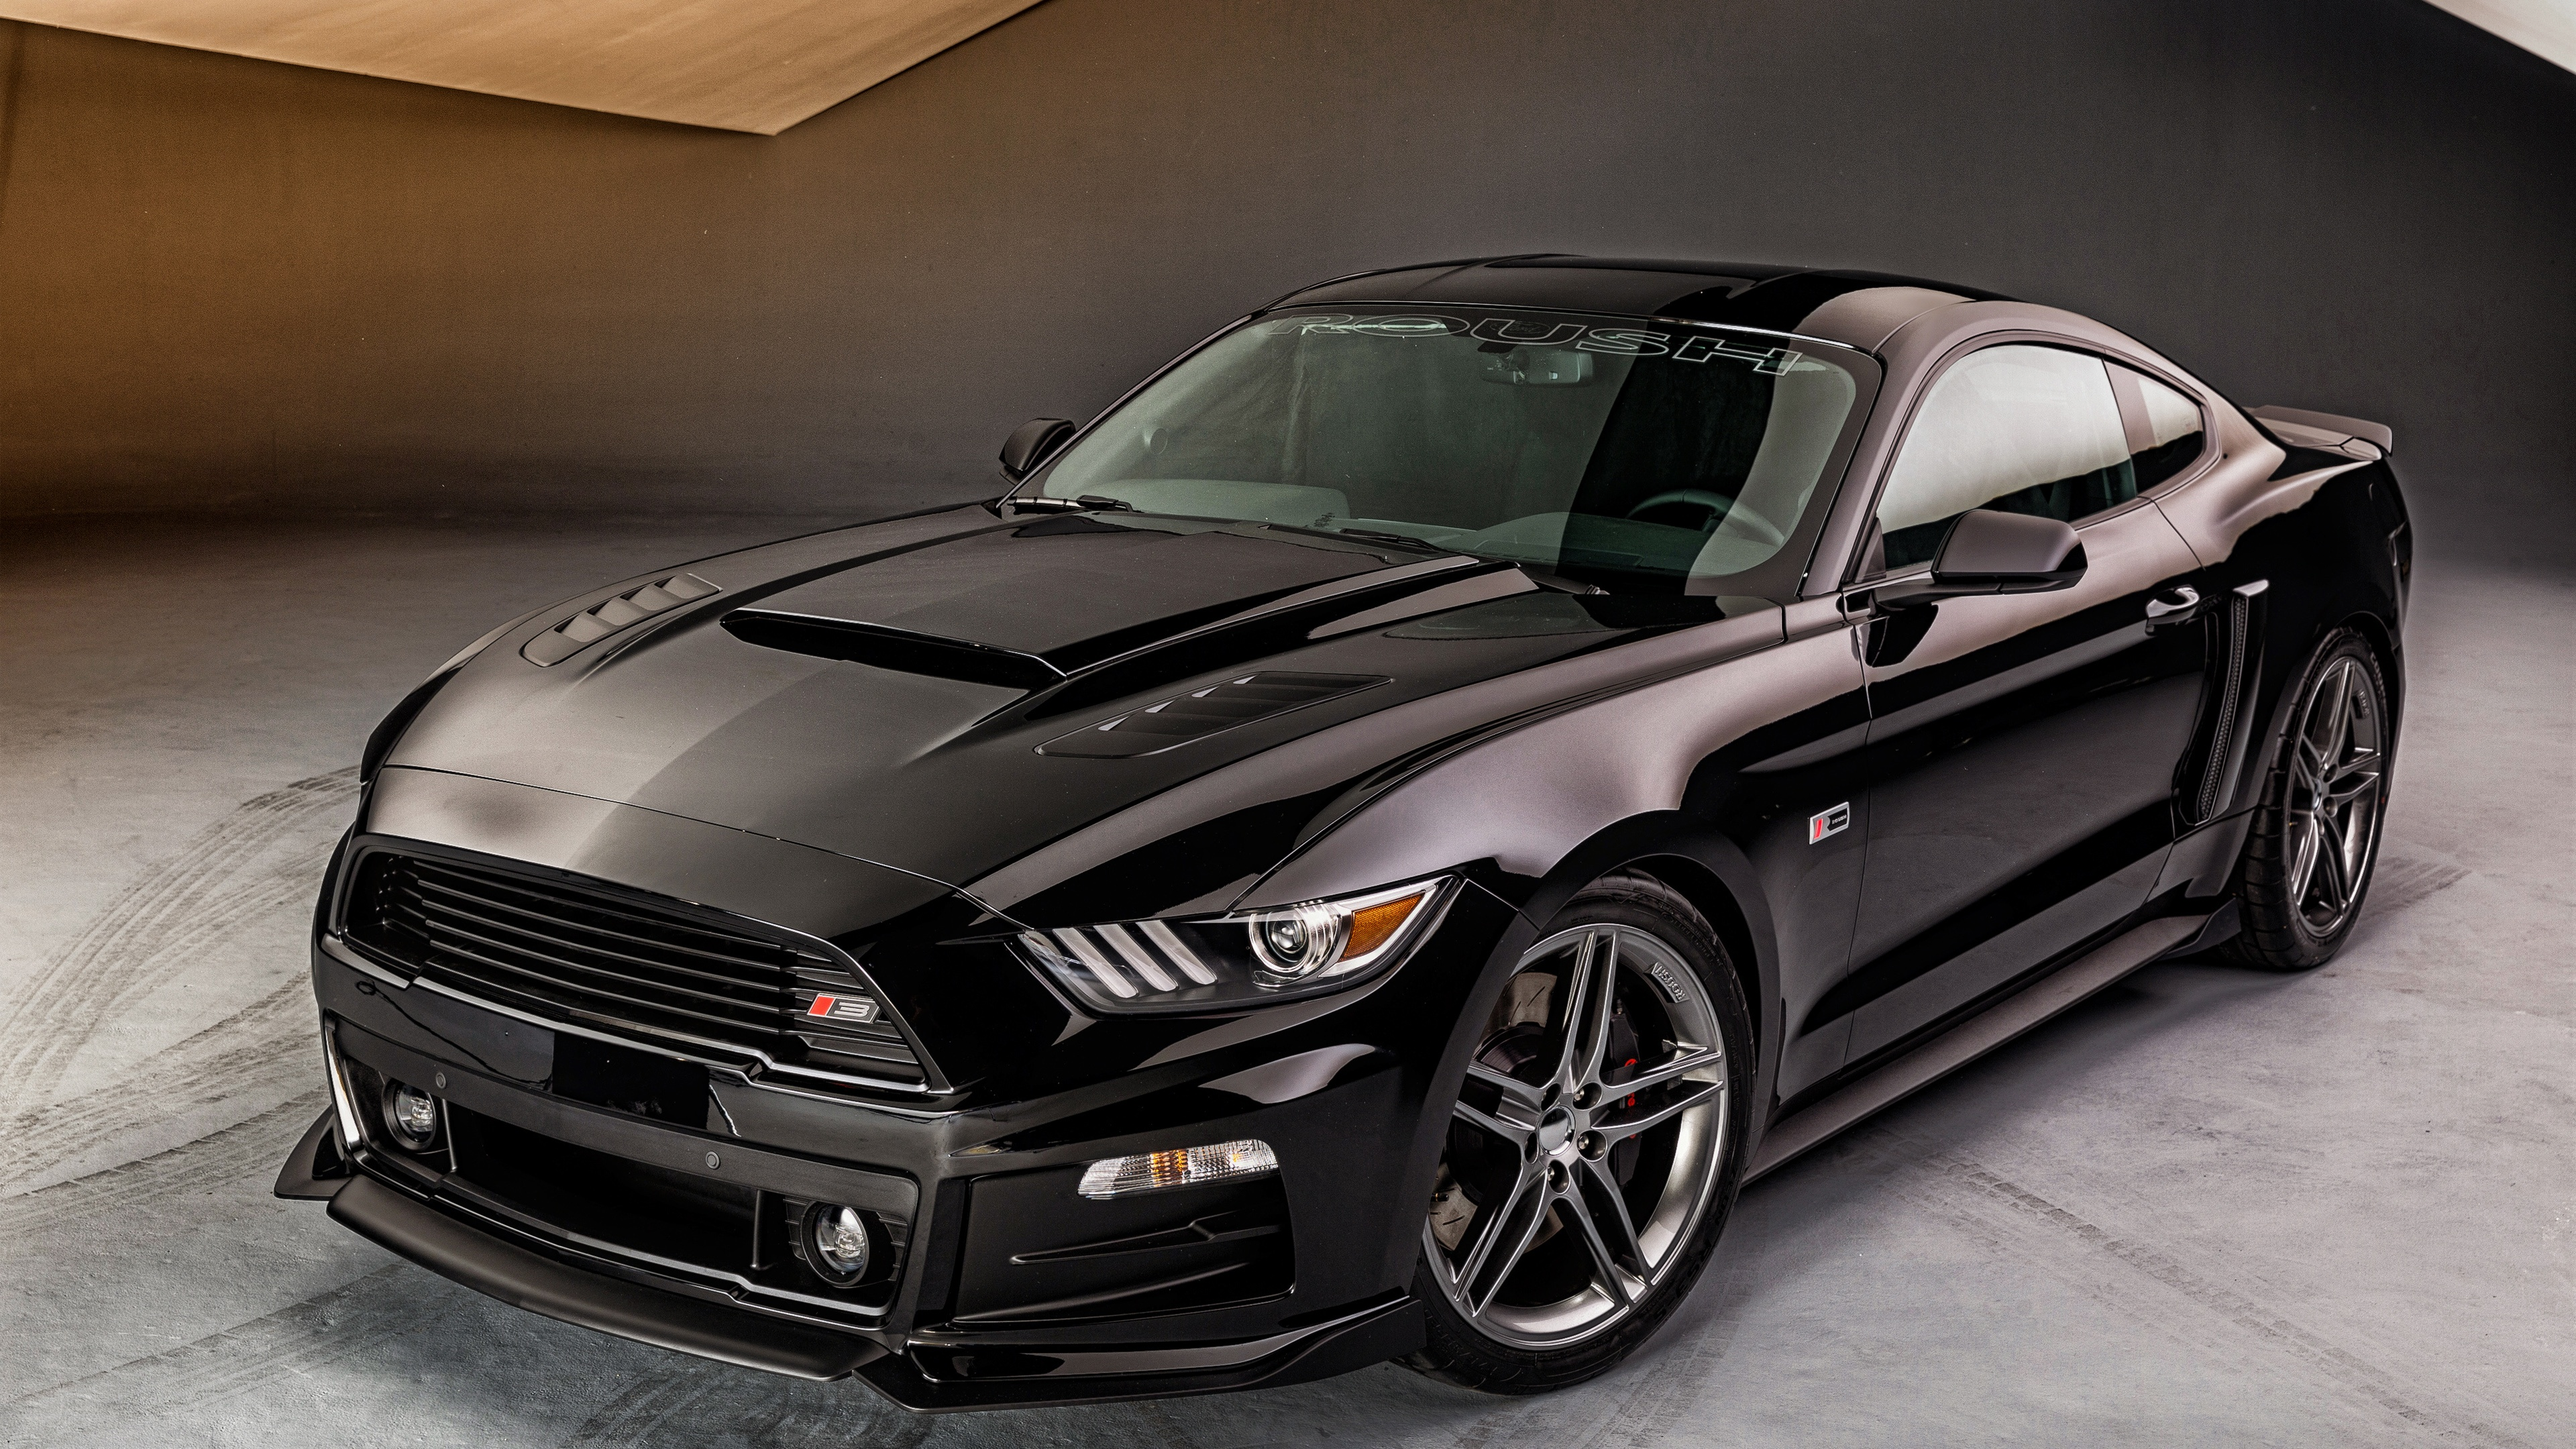 Ford Mustang Hd Wallpapers Wallpaper Desktop Hd